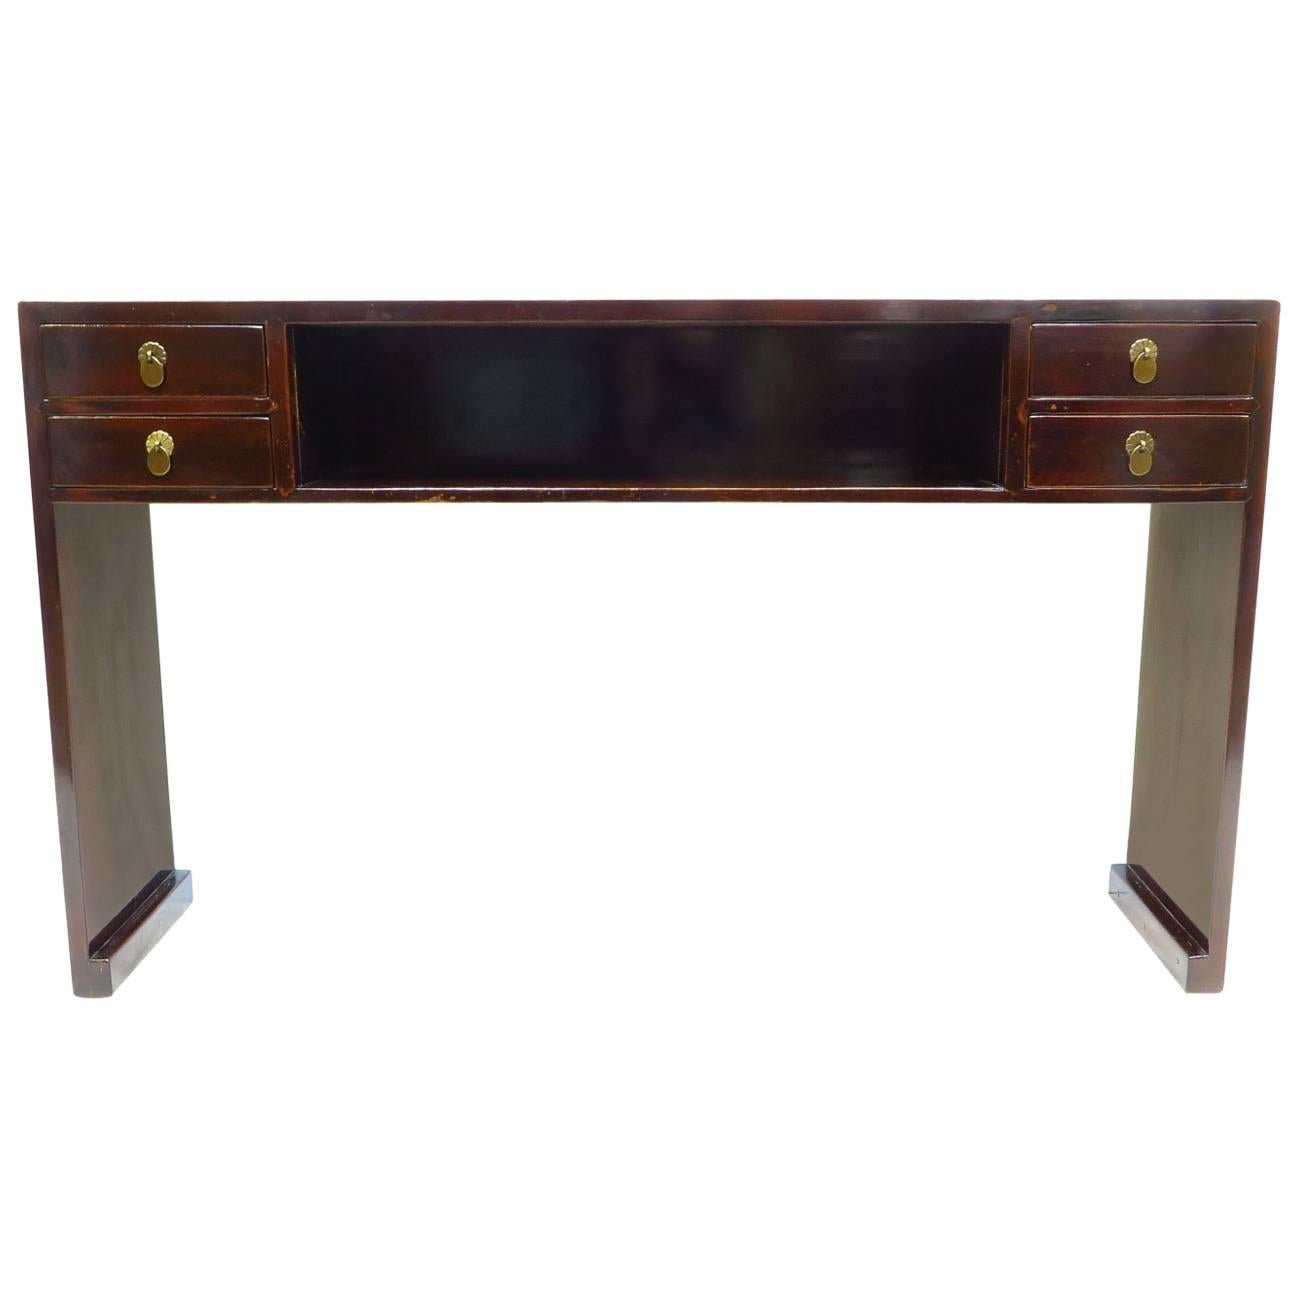 19th Century Compartment Console Table